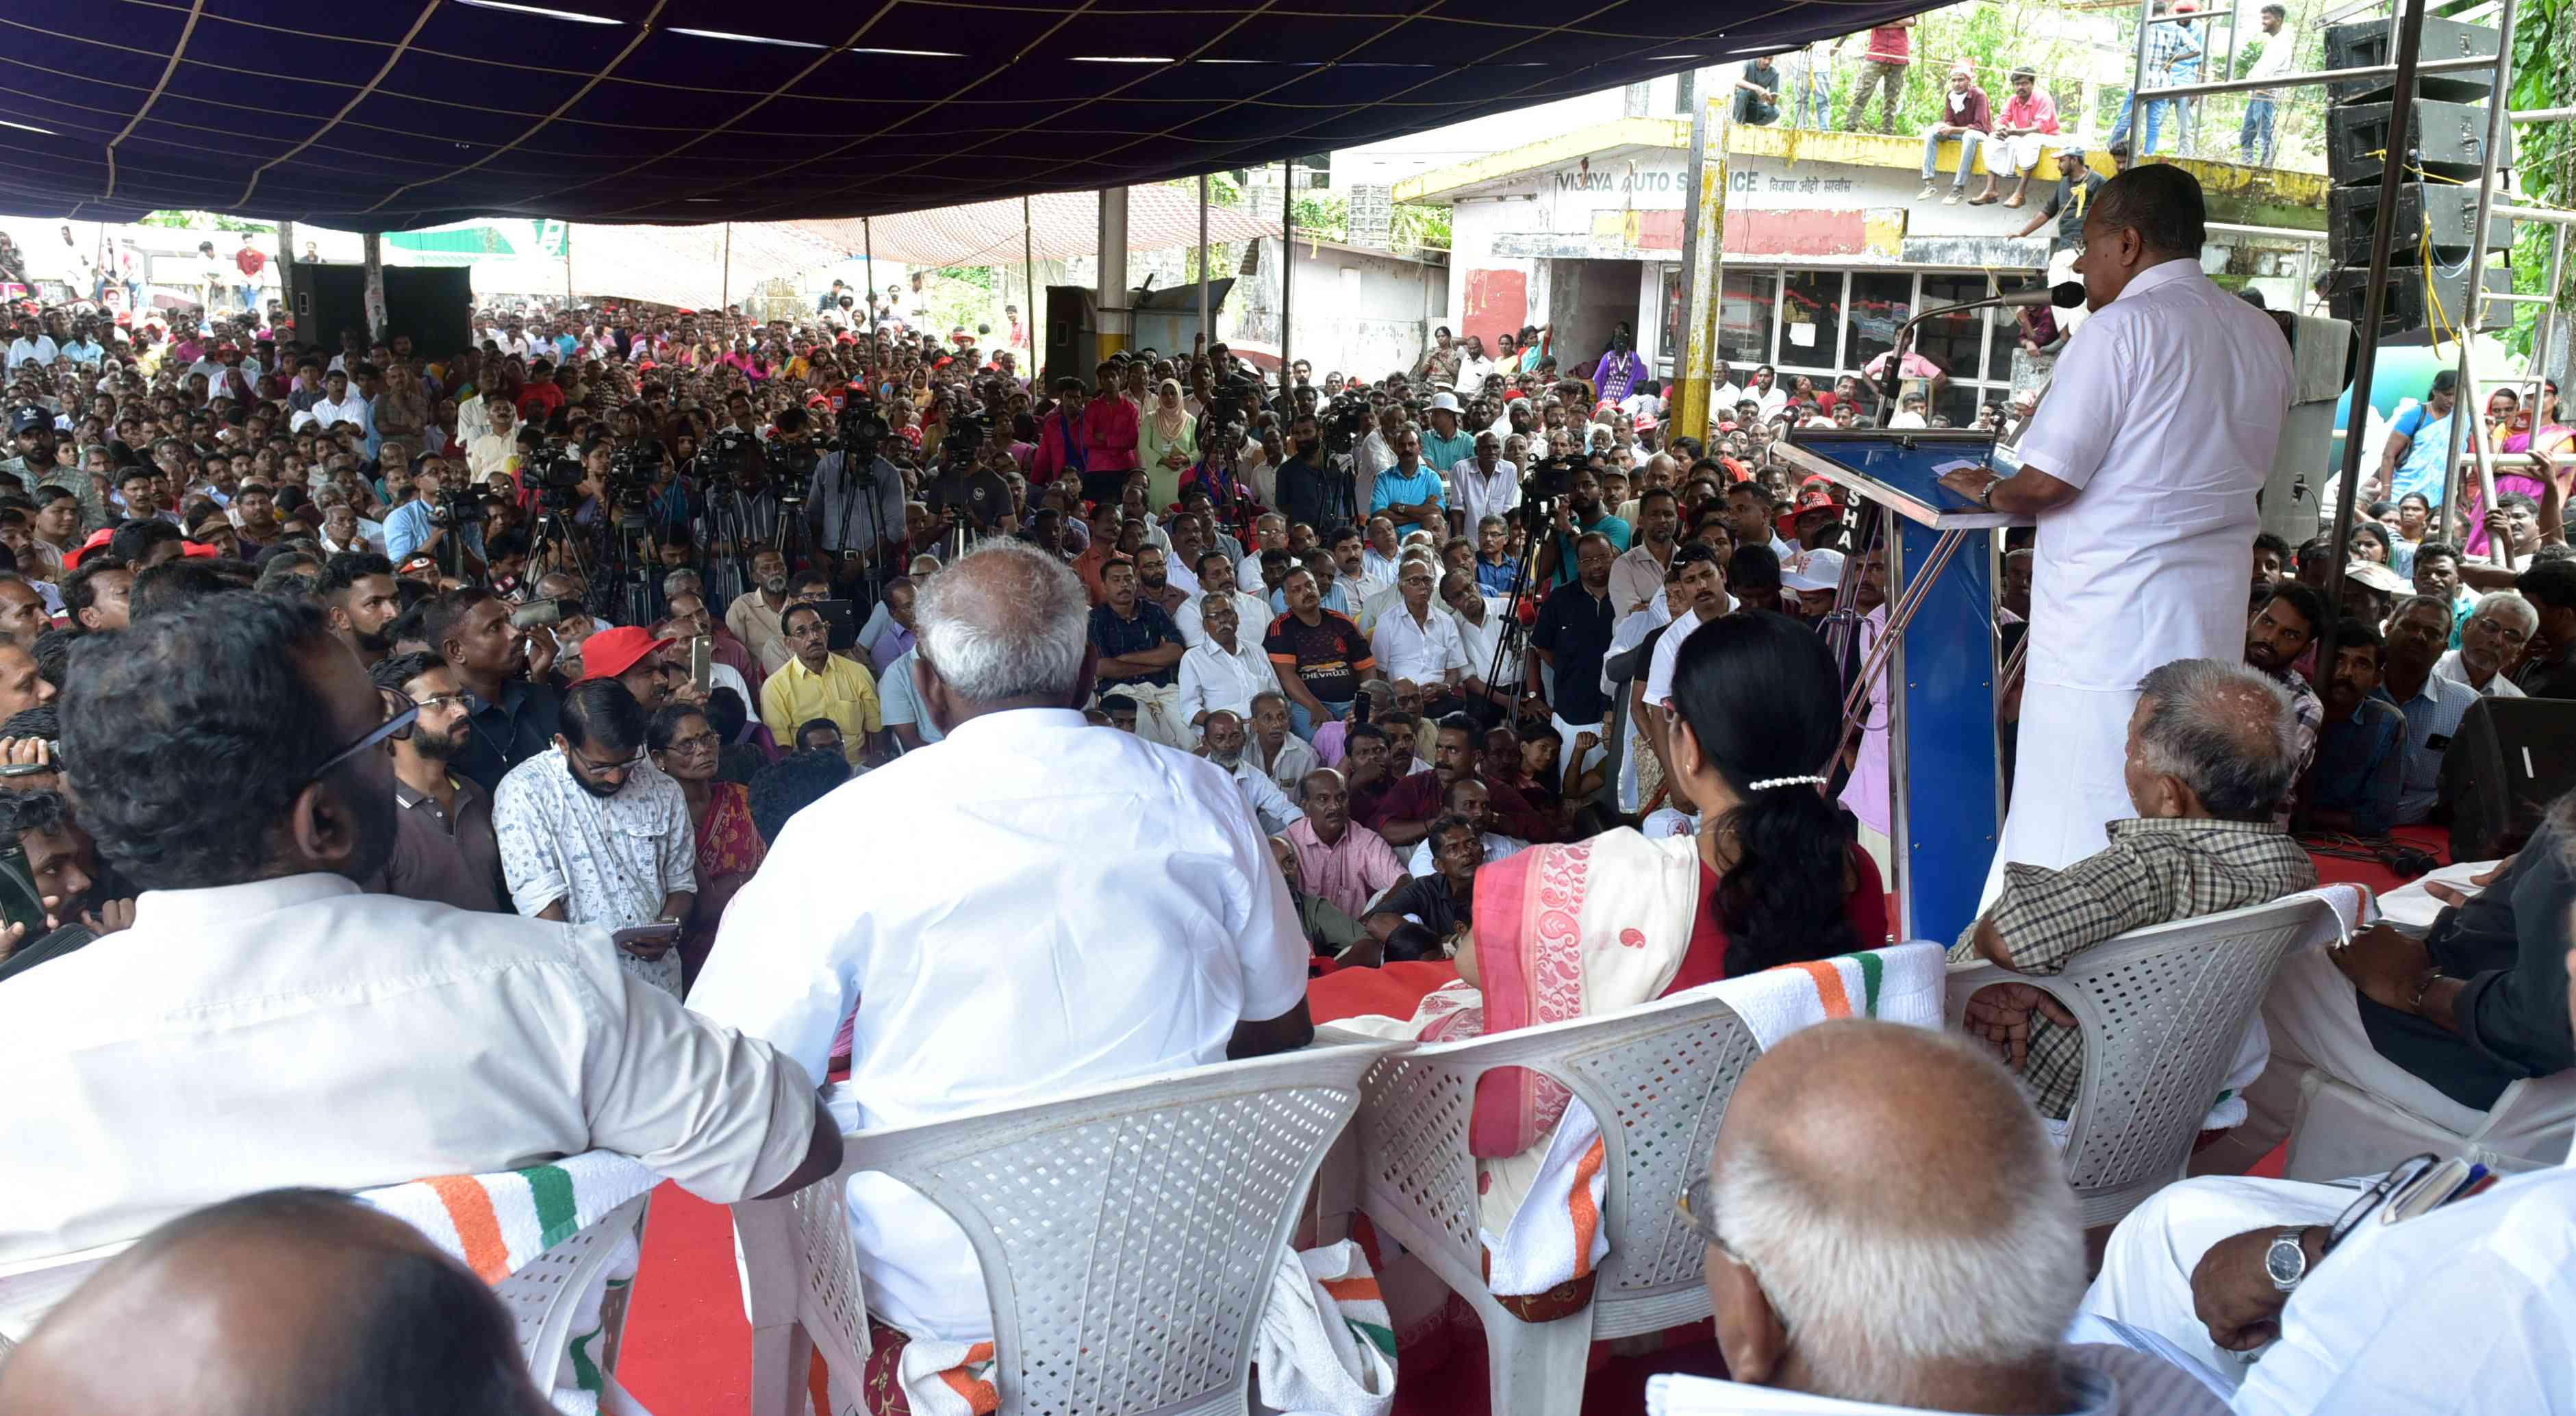 Pinarayi Vijayan addresses a campaign rally in Wayanad. Photo credit: Ratheesh